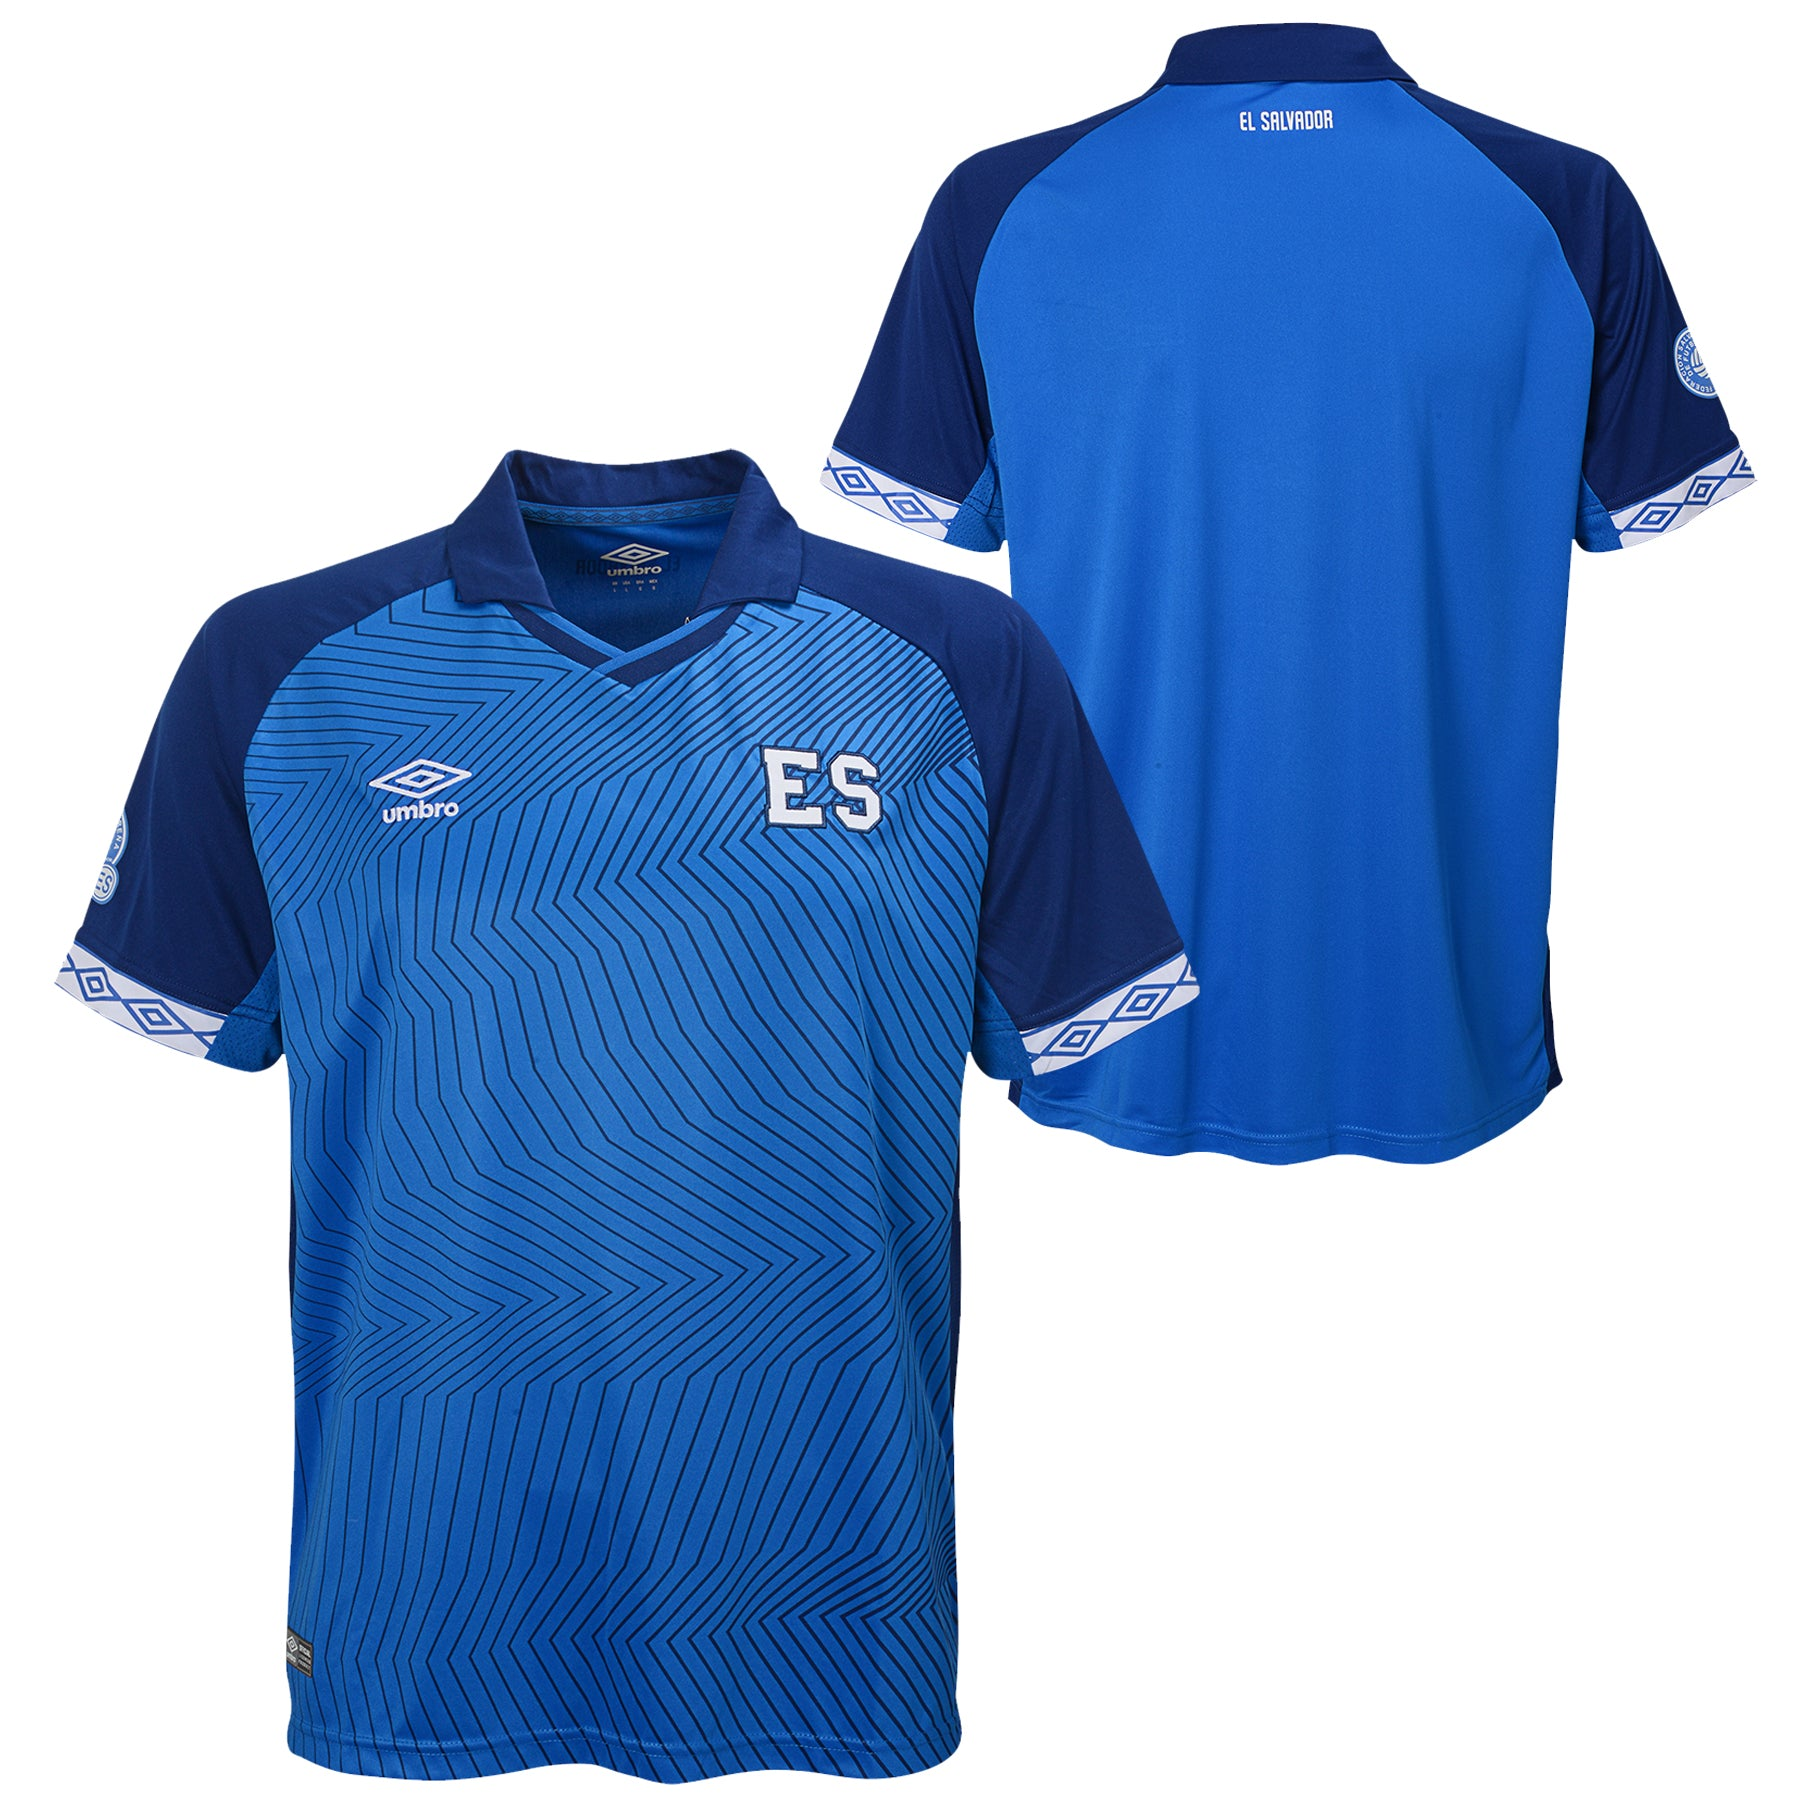 2019 El Salvador Men's Home Replica Jersey